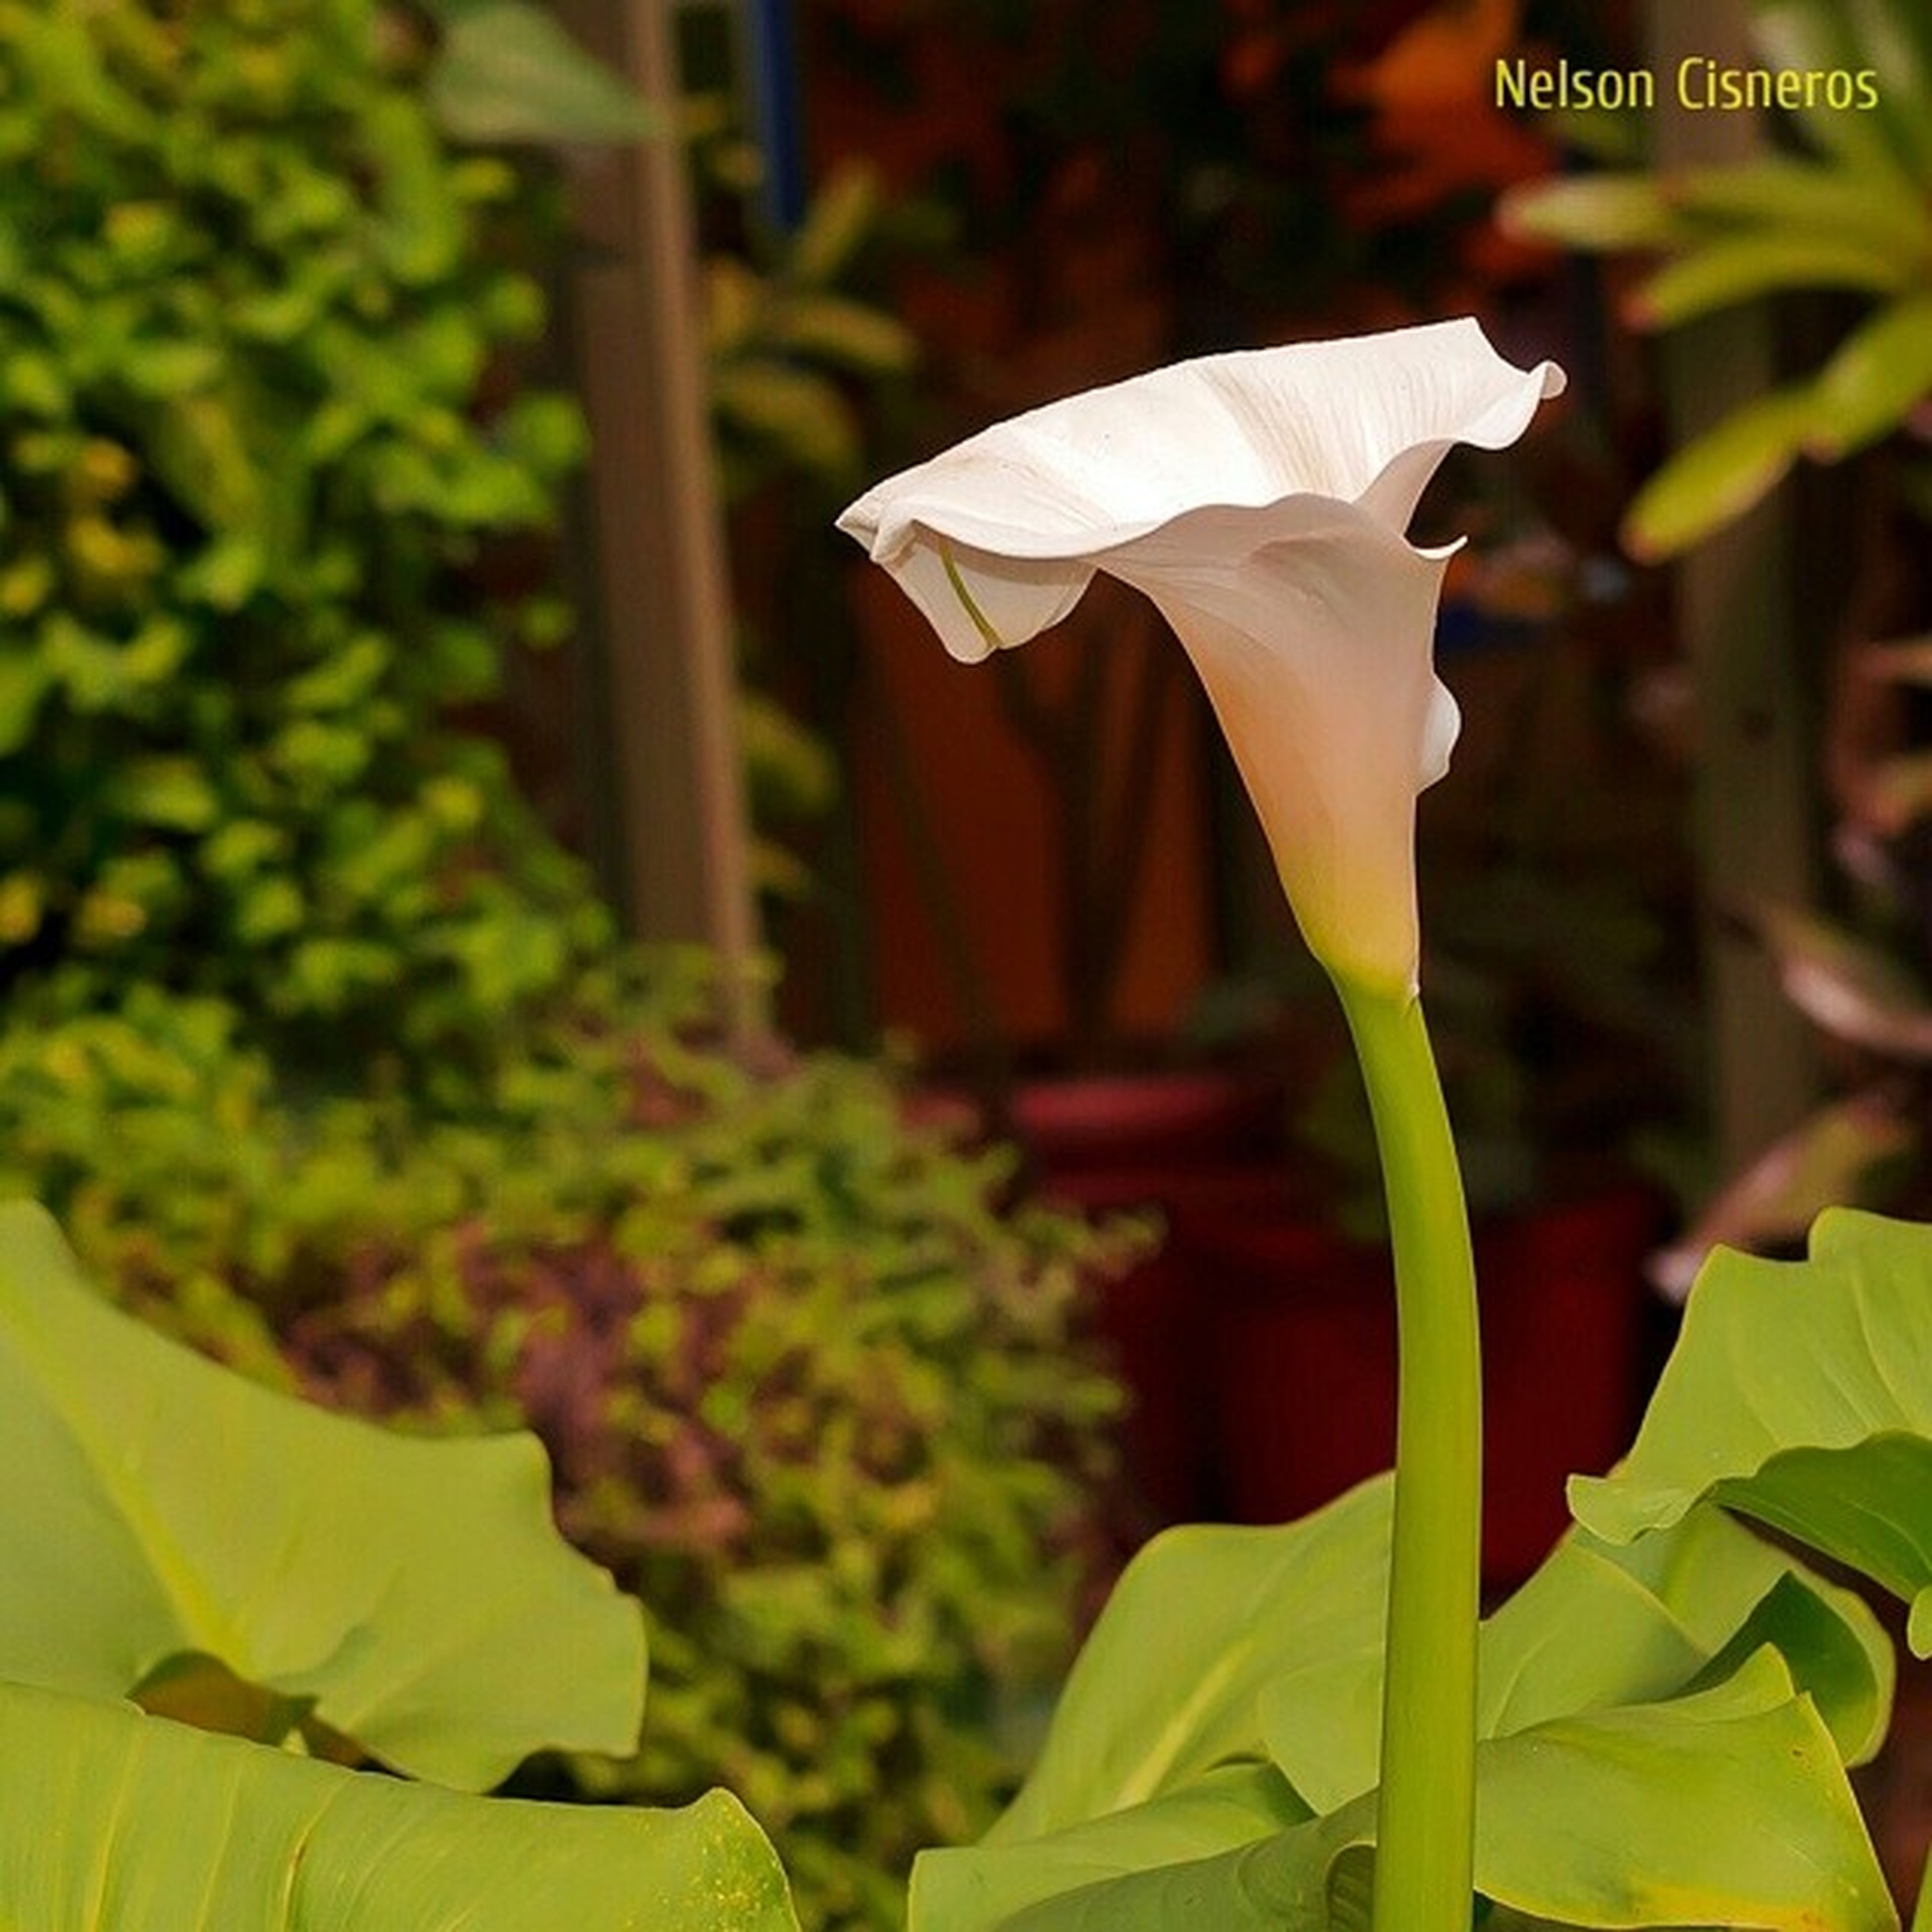 flower, freshness, close-up, focus on foreground, leaf, growth, plant, fragility, flower head, petal, nature, yellow, selective focus, outdoors, day, beauty in nature, tulip, text, no people, green color